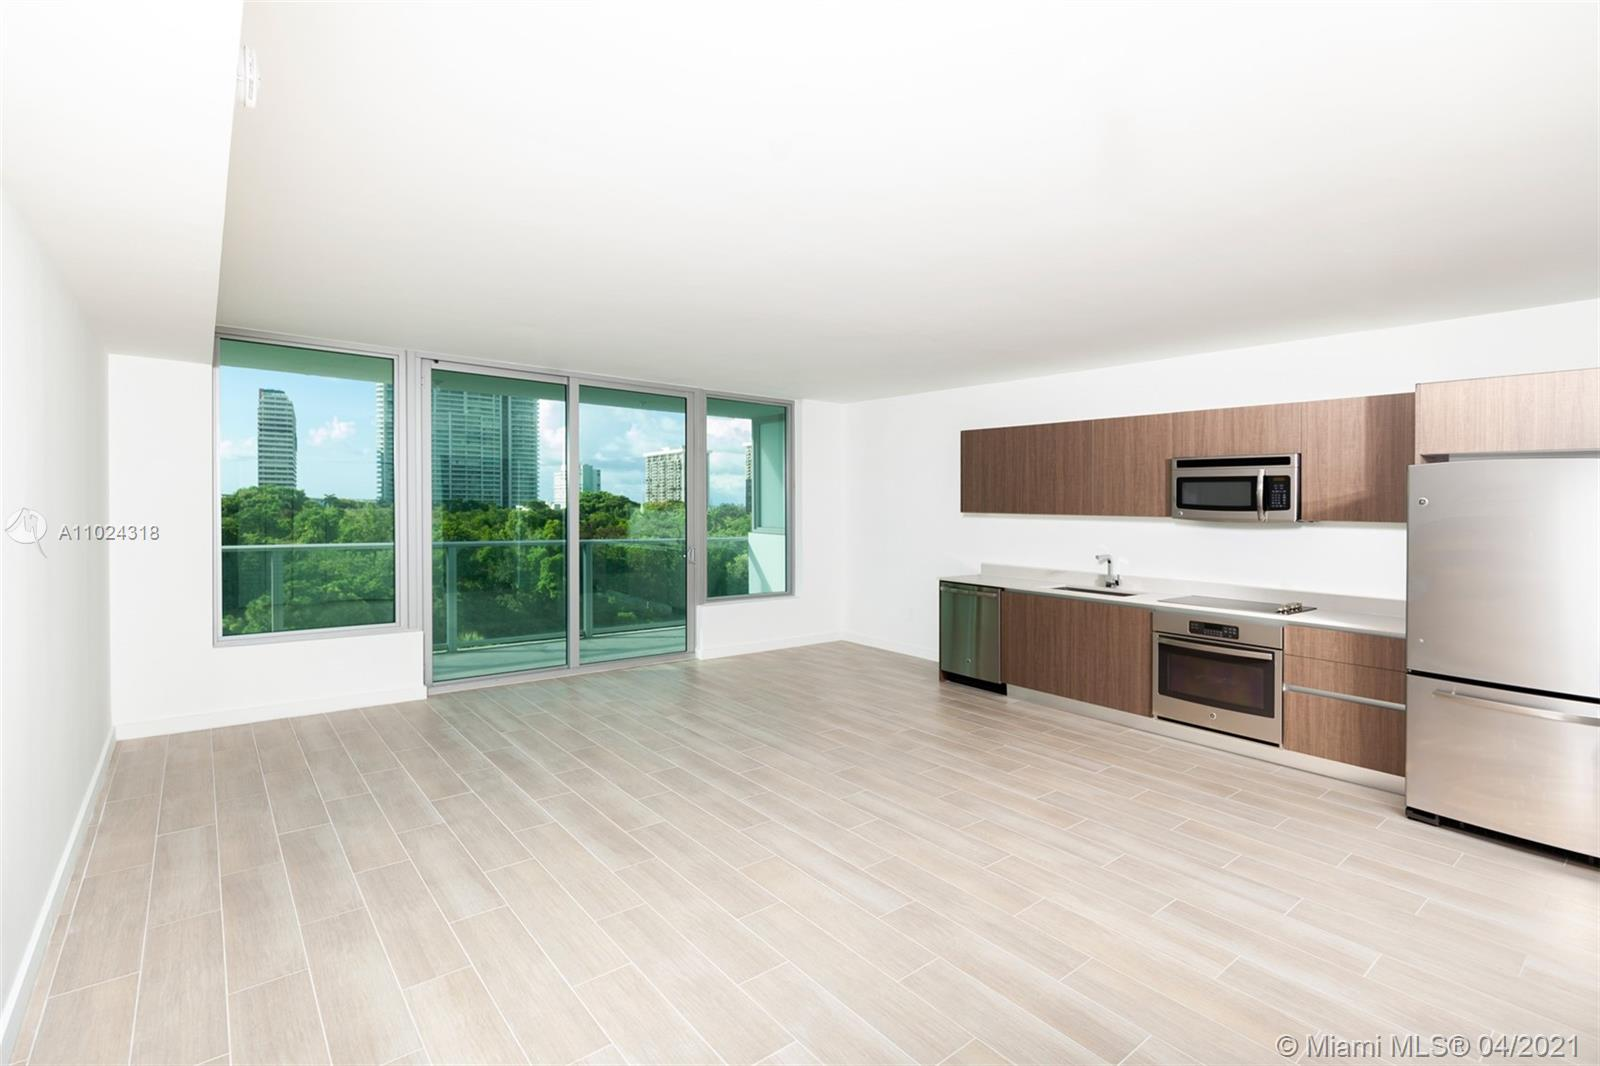 Le Parc At Brickell #611 - 1600 SW 1st Ave #611, Miami, FL 33129